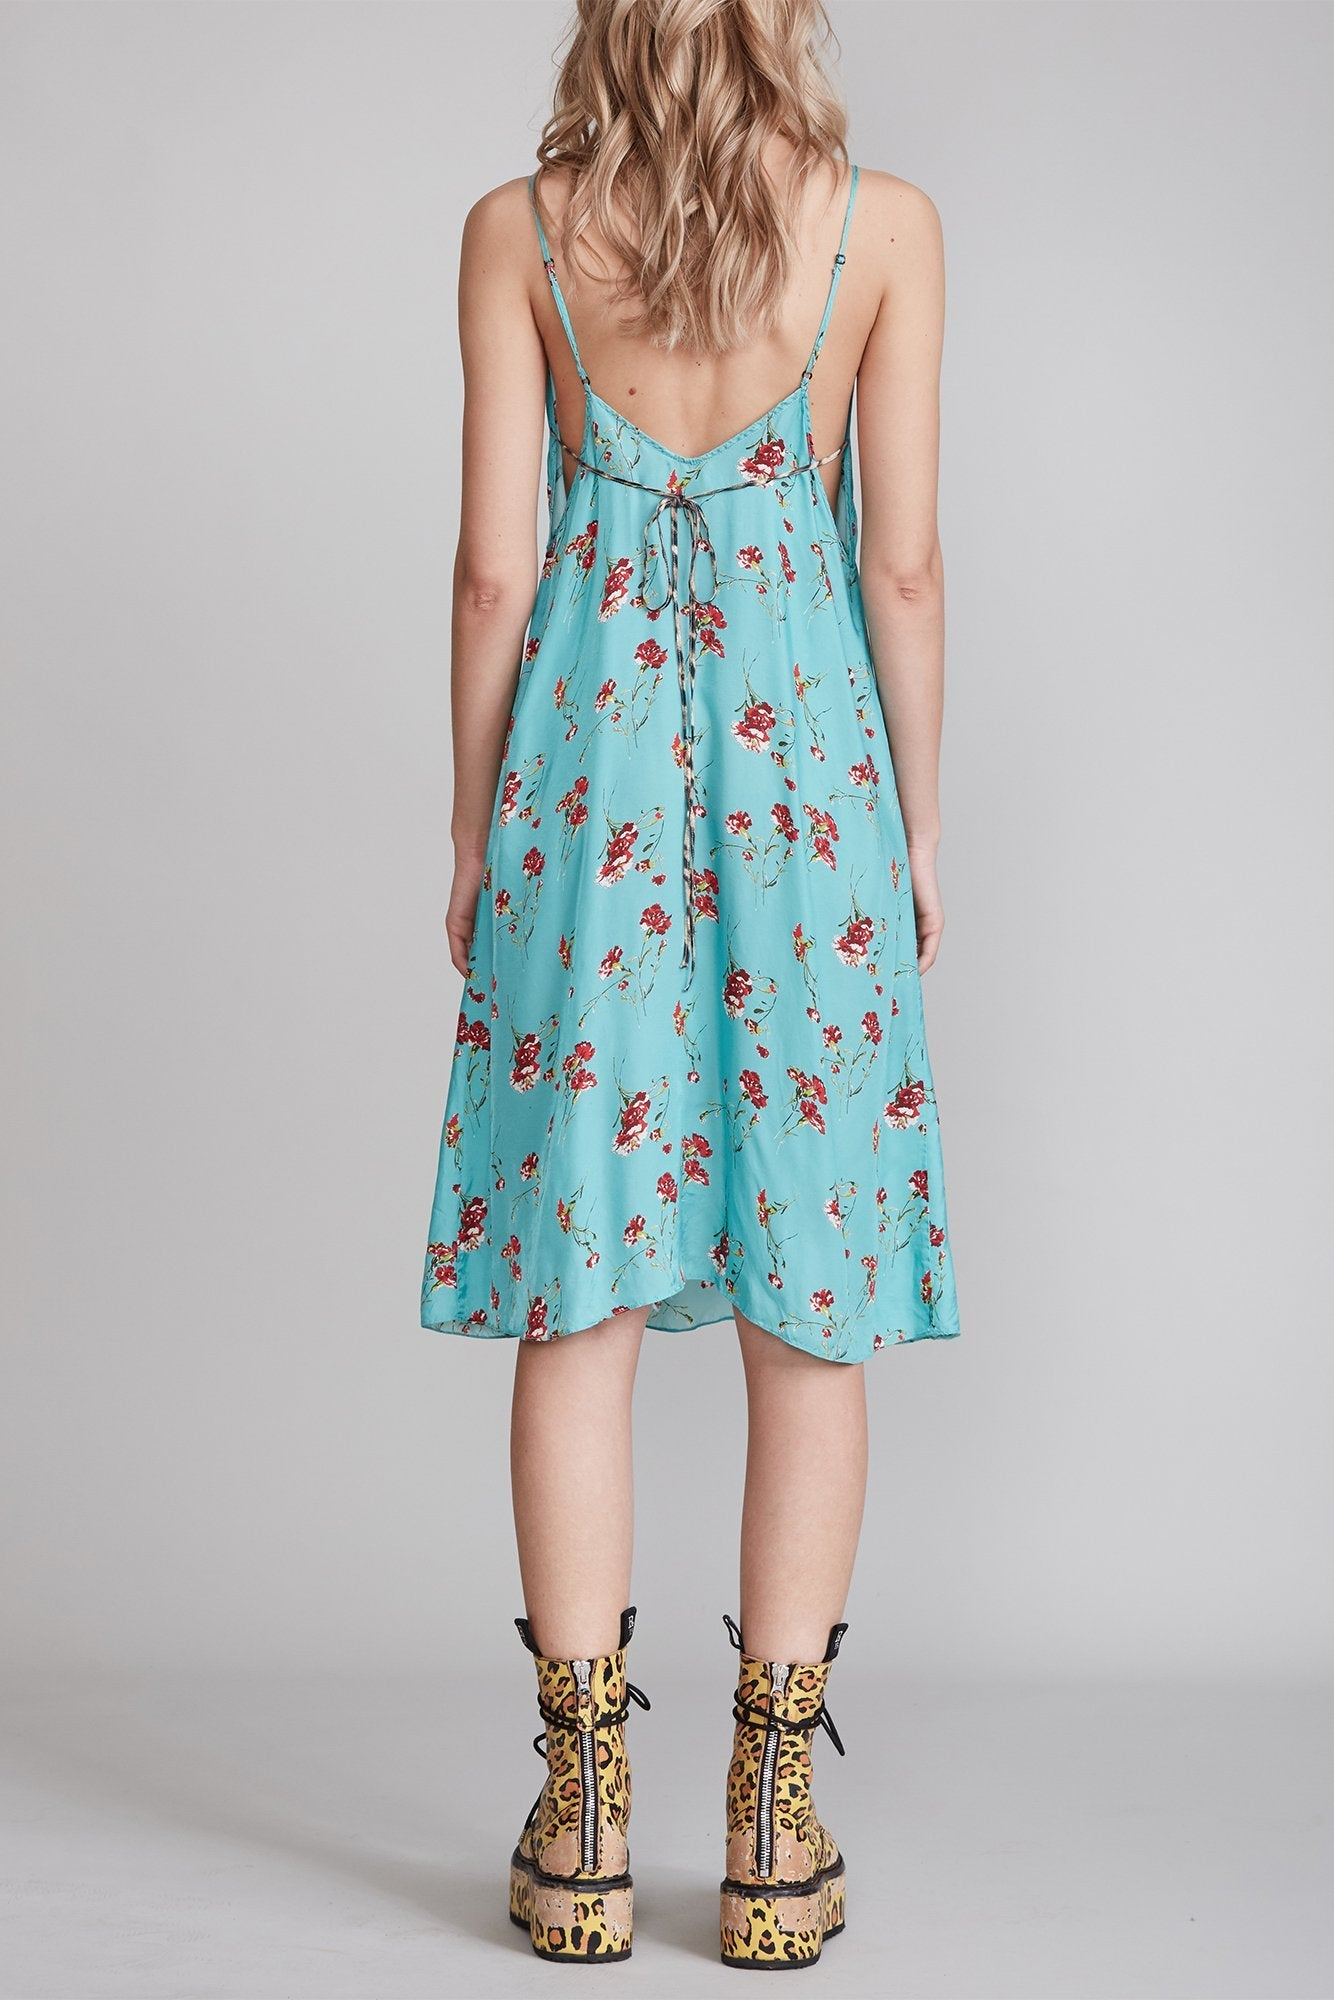 Midi Slip Dress with Back Tie - Light Blue Floral